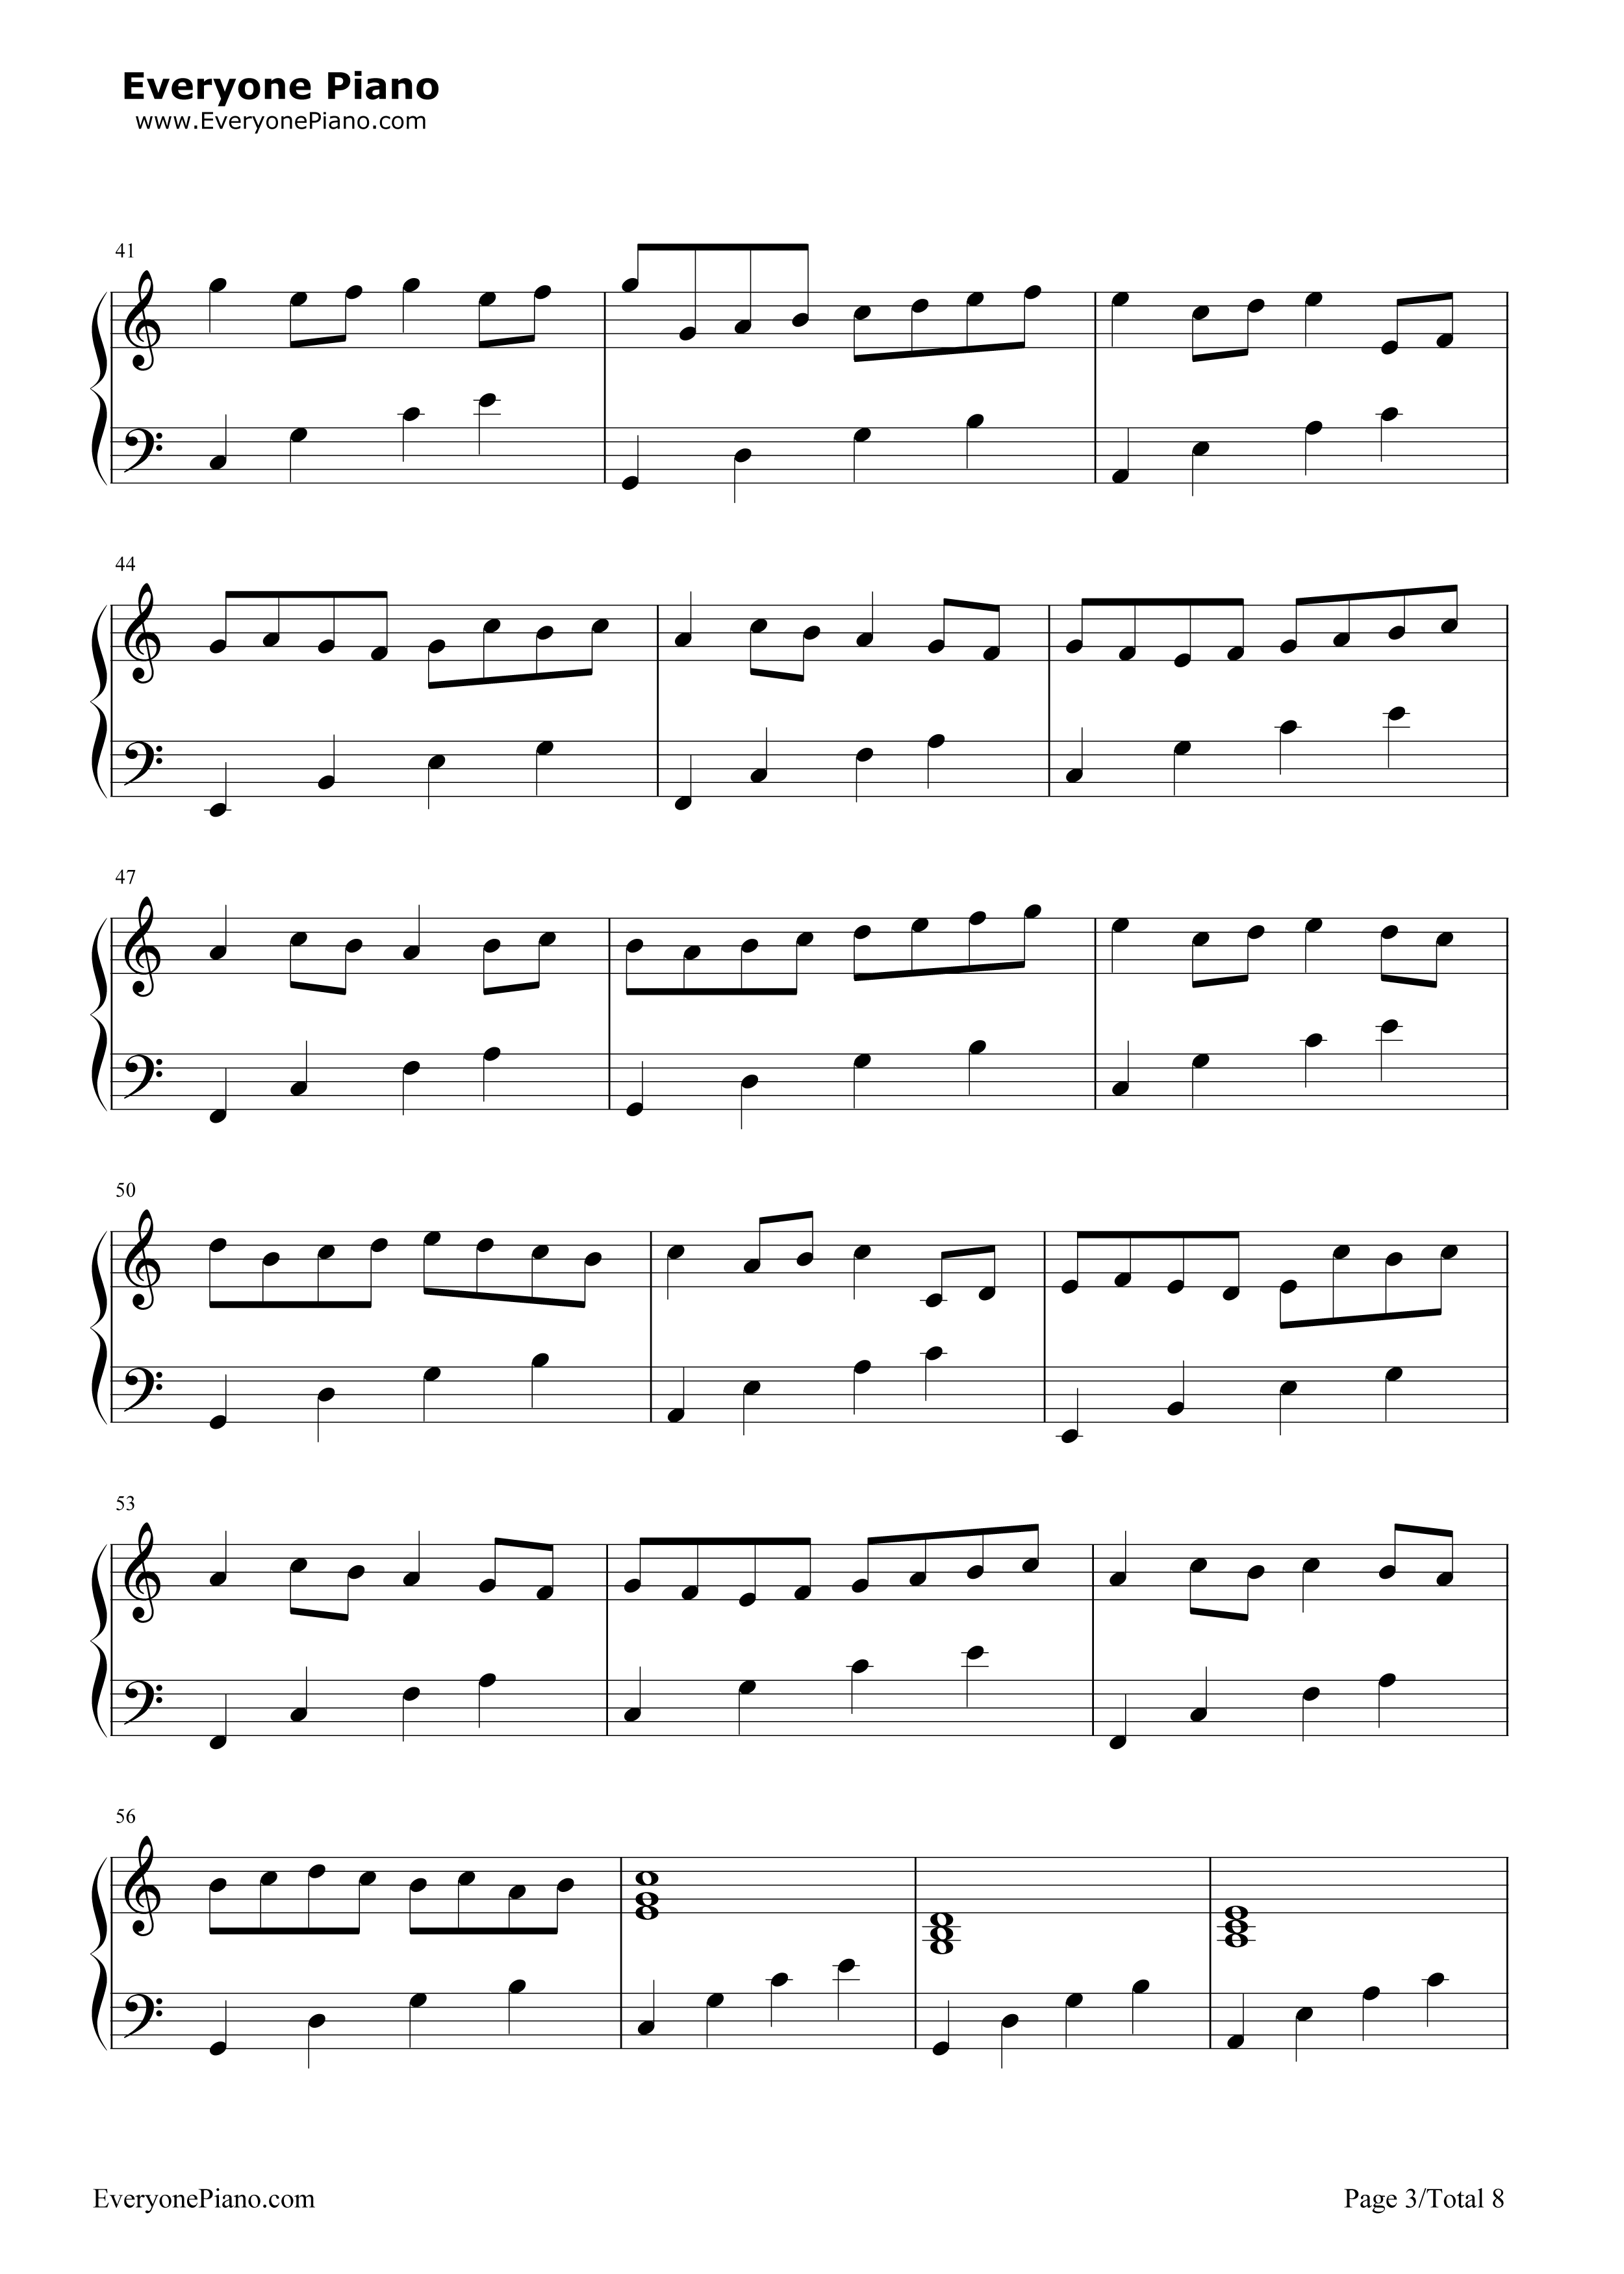 Canon in c major simple version free piano sheet music piano chords canon in c major simple version stave preview 3 hexwebz Gallery